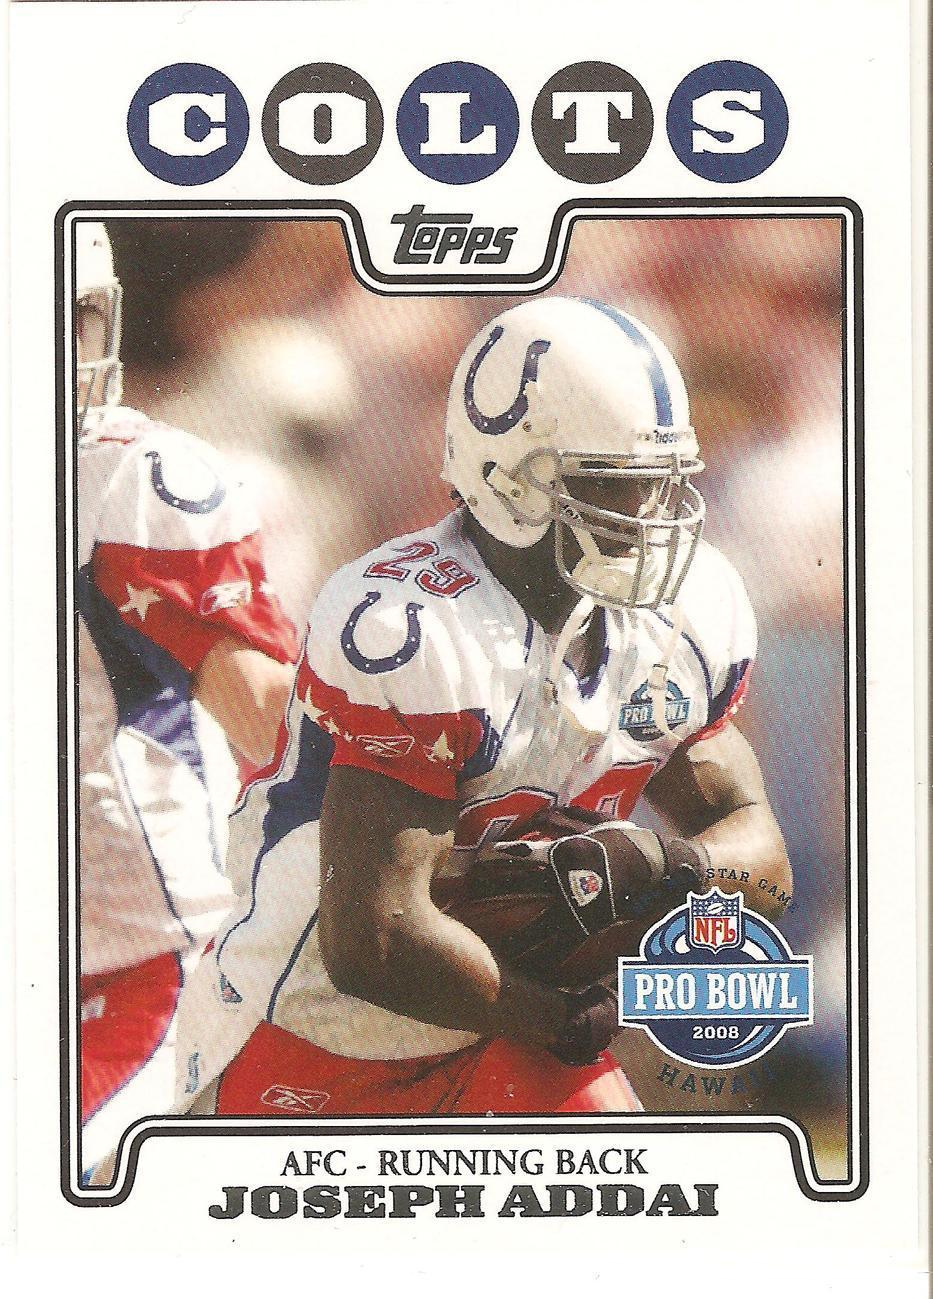 Joseph Addai Topps 08 #310 Indianapolis Colts New England Patriots